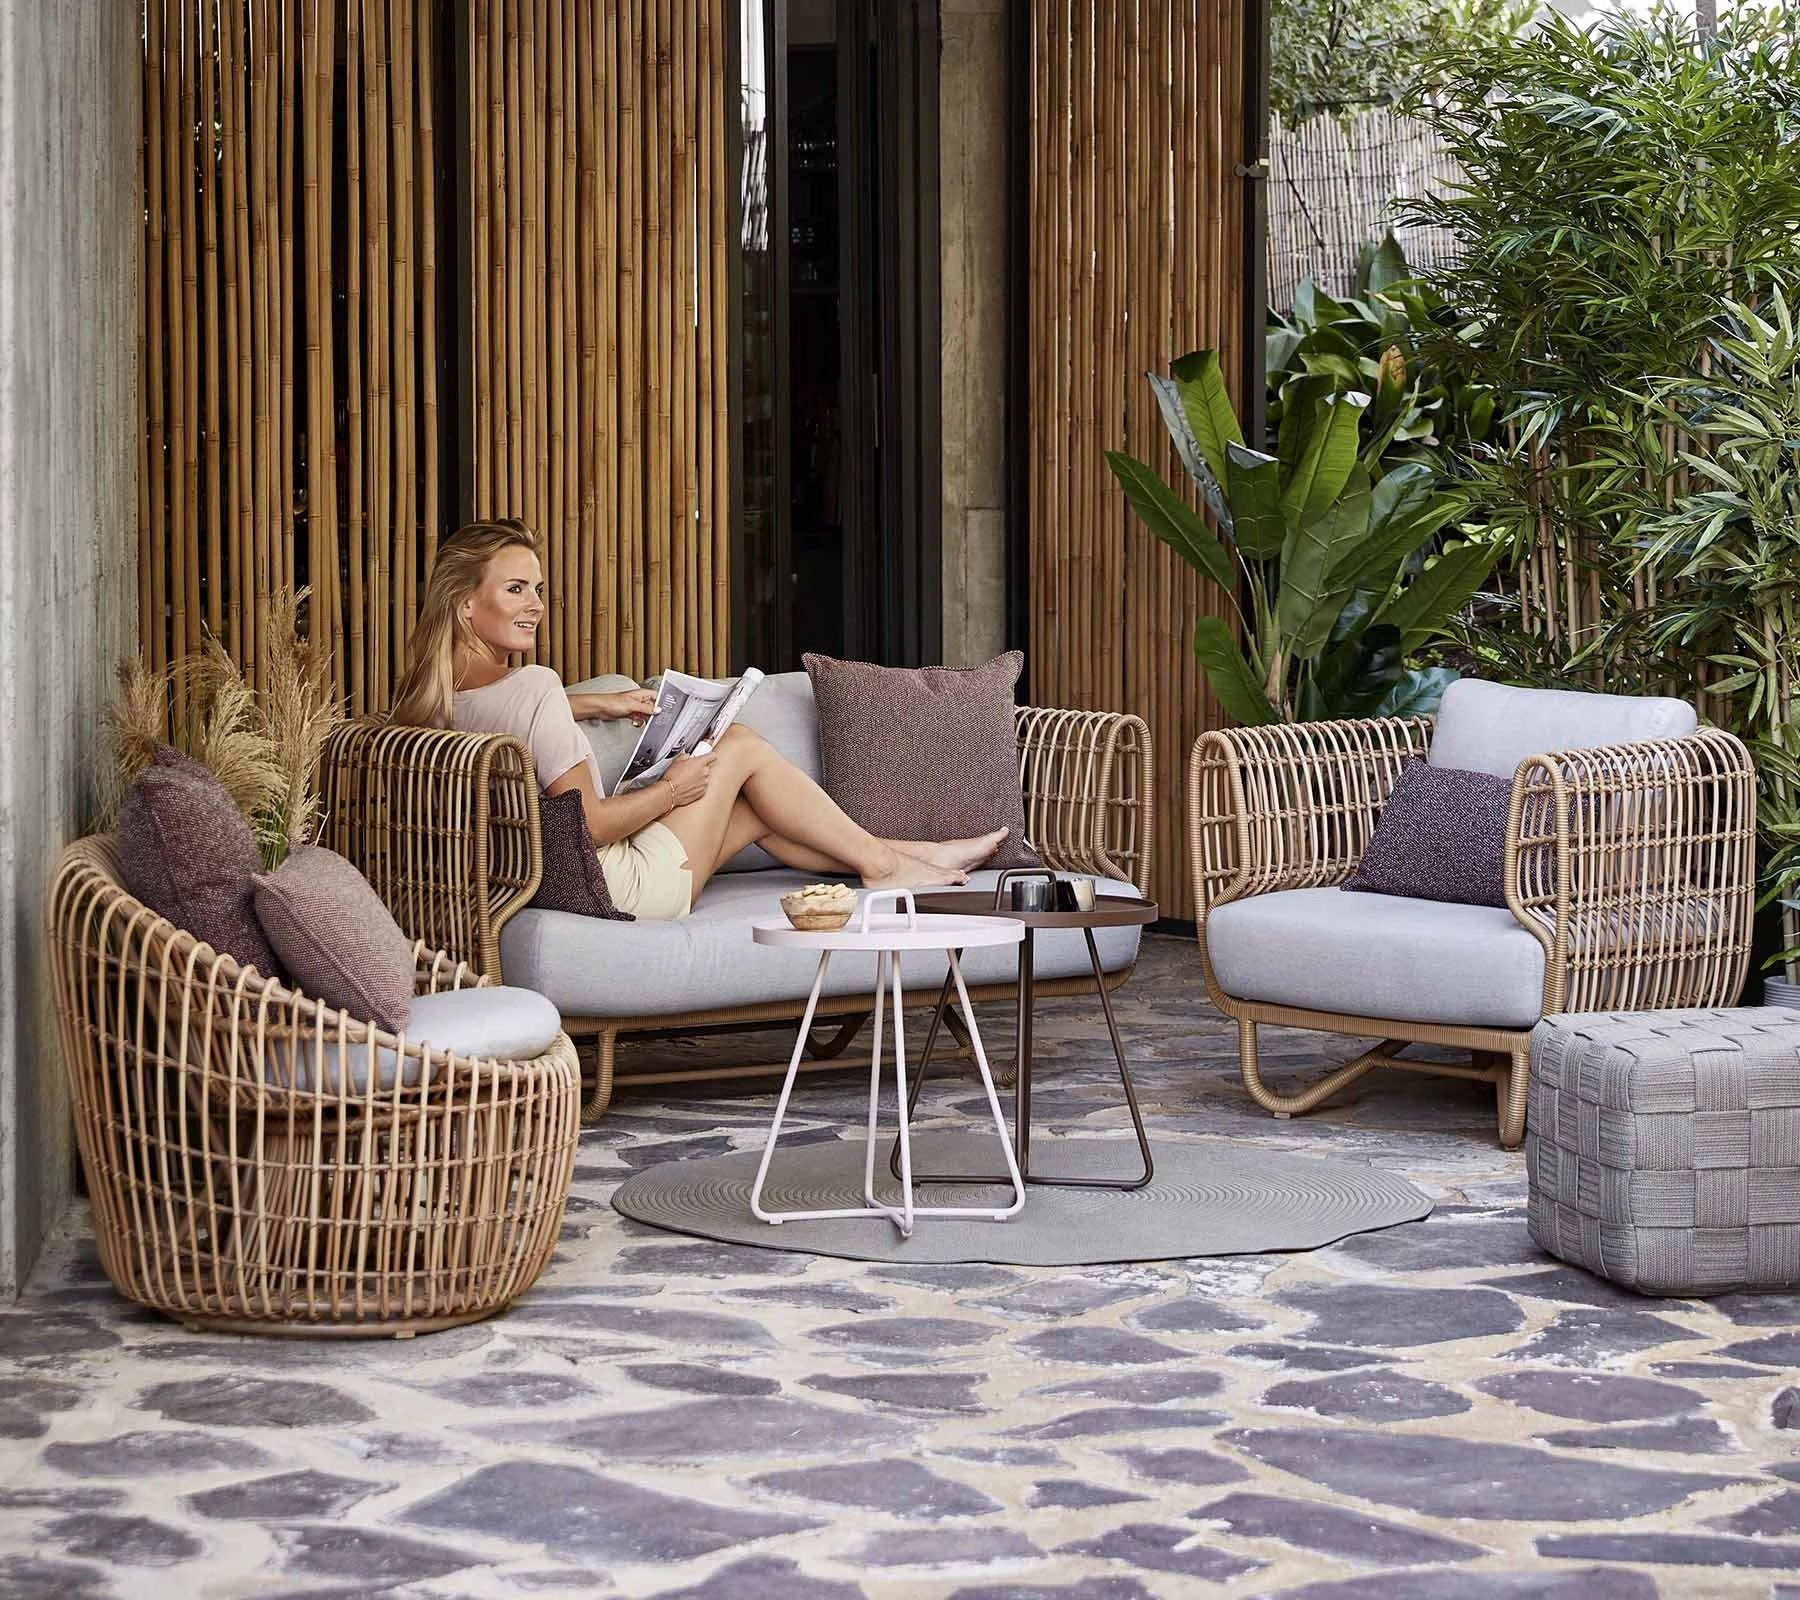 Nest 2-Seater Sofa from Cane-line, designed by Foersom & Hiort-Lorenzen MDD